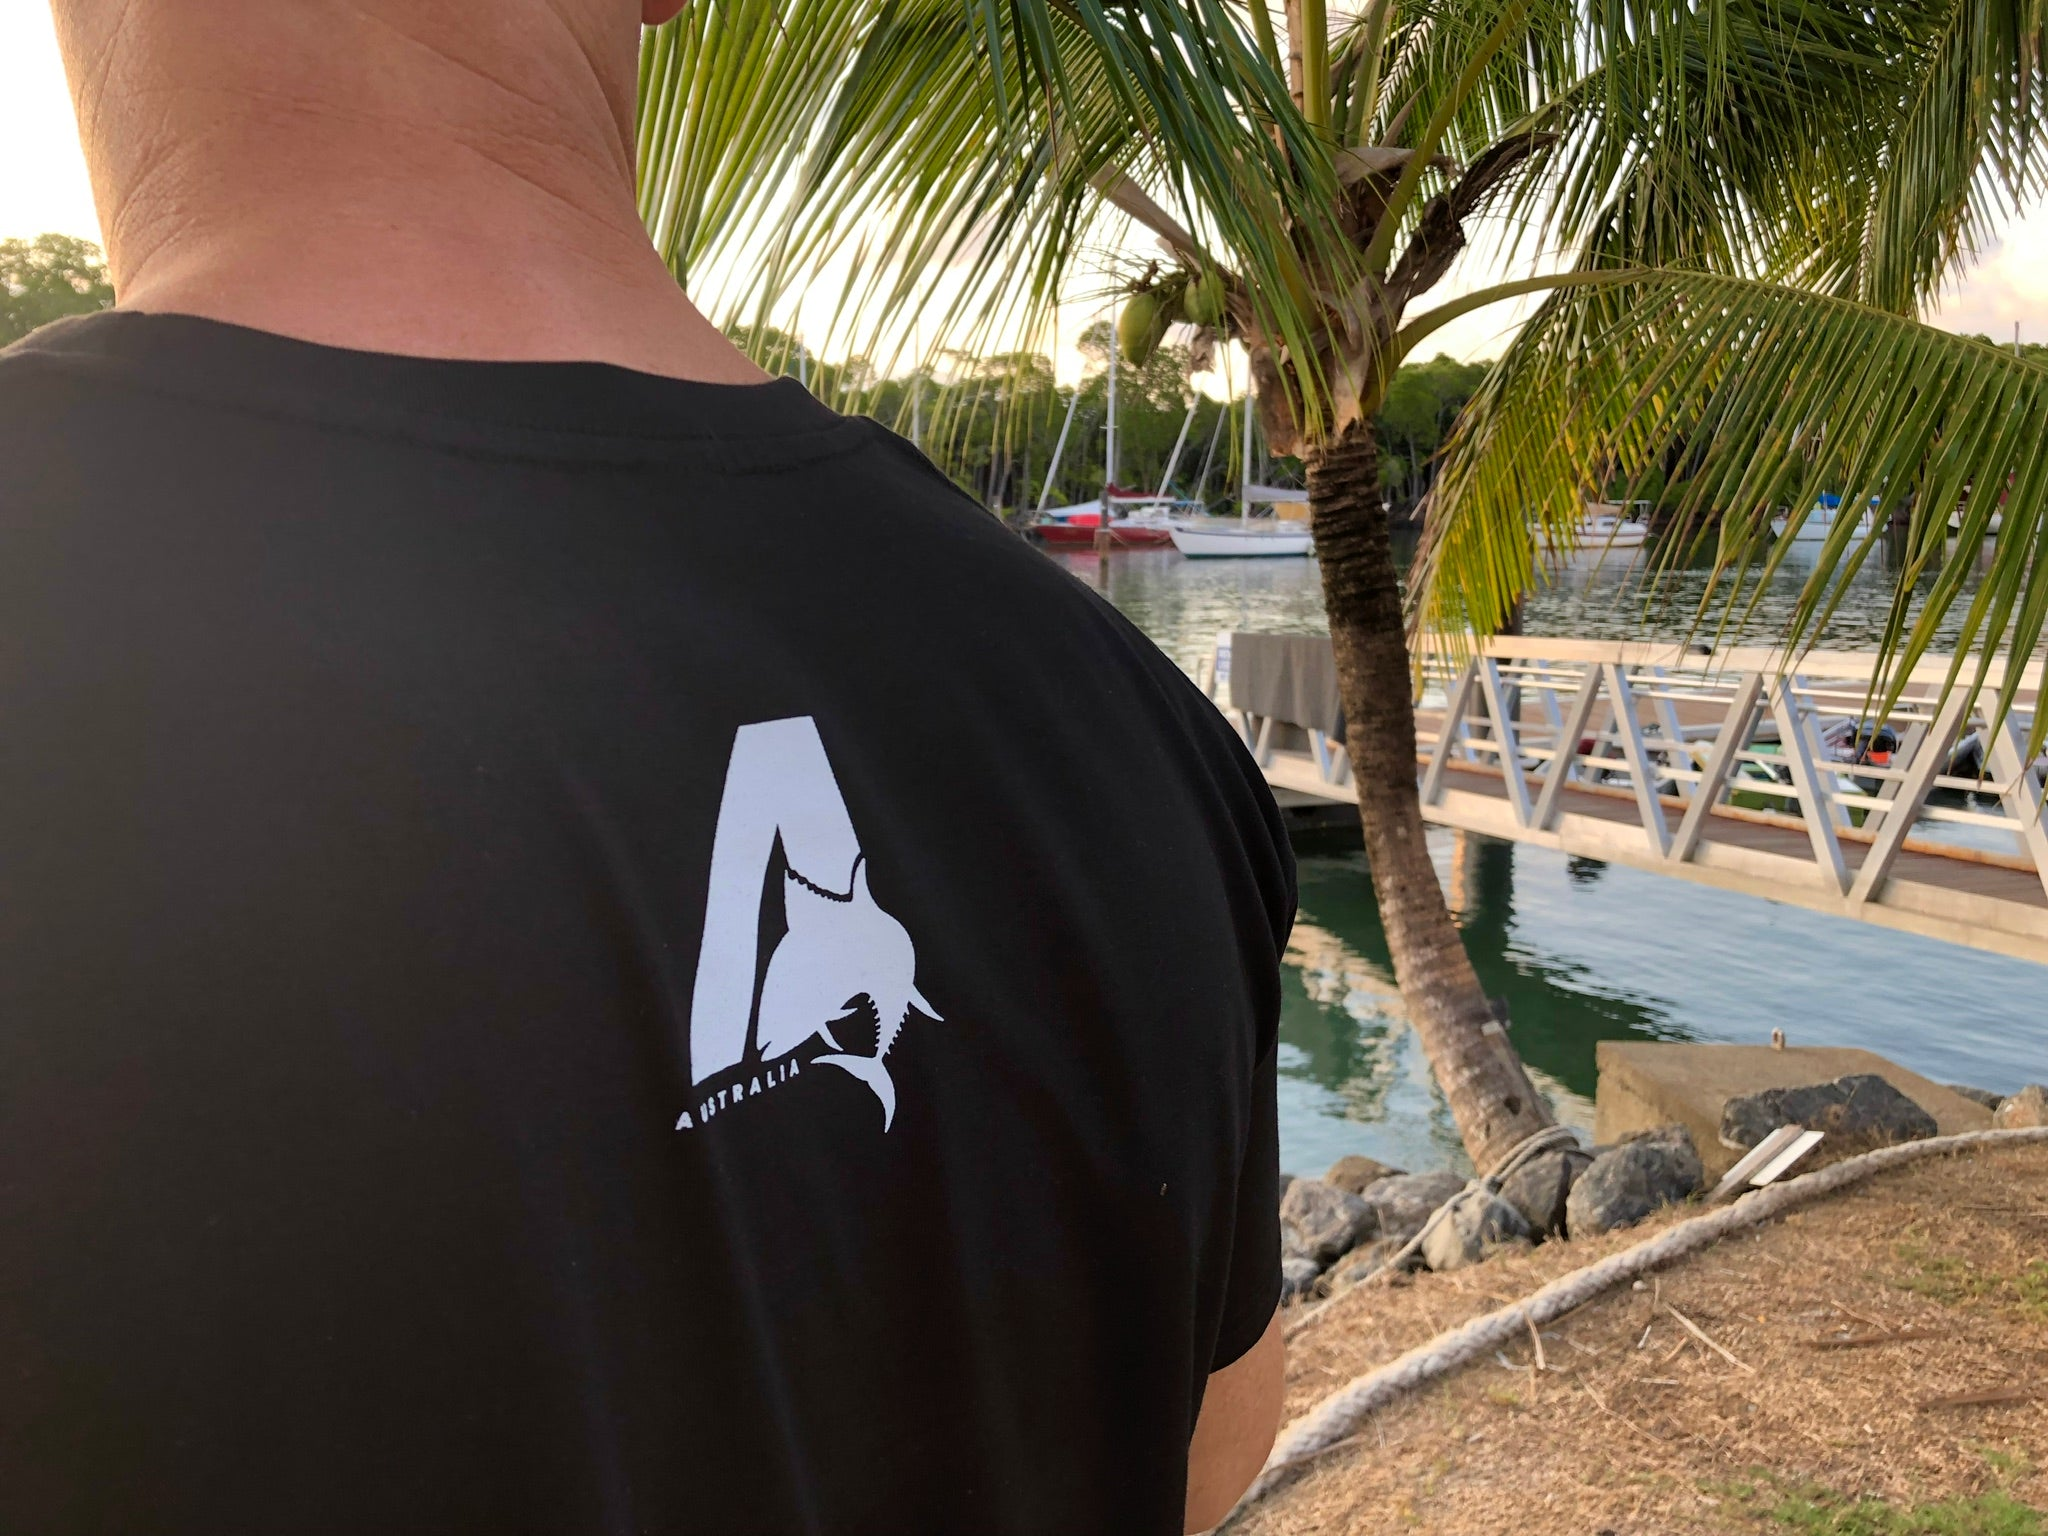 Cotton t-shirt for fishing and boating lifestyle